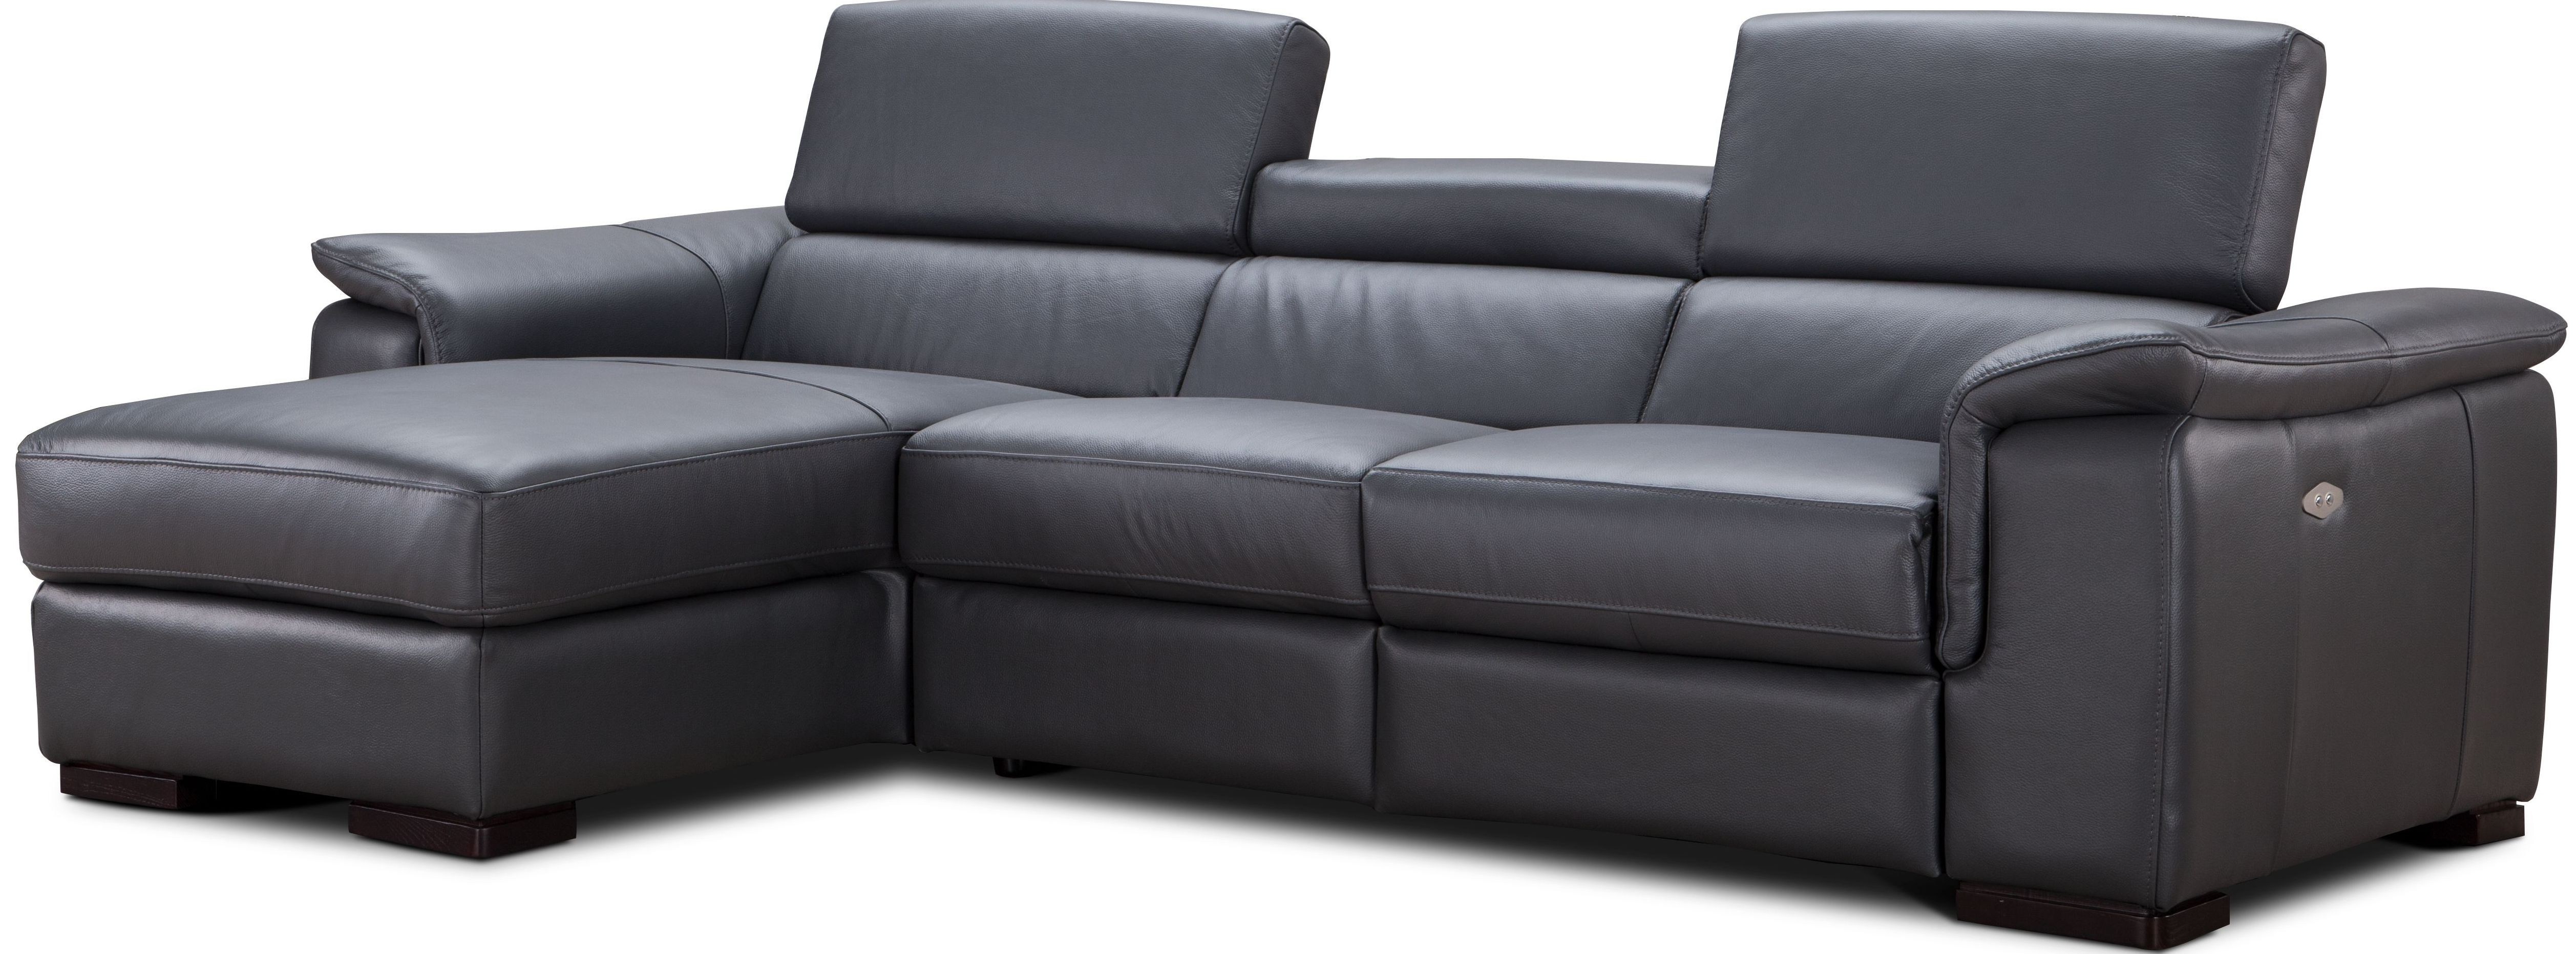 Allegra Slate Gray Leather Power Reclining Laf Sectional